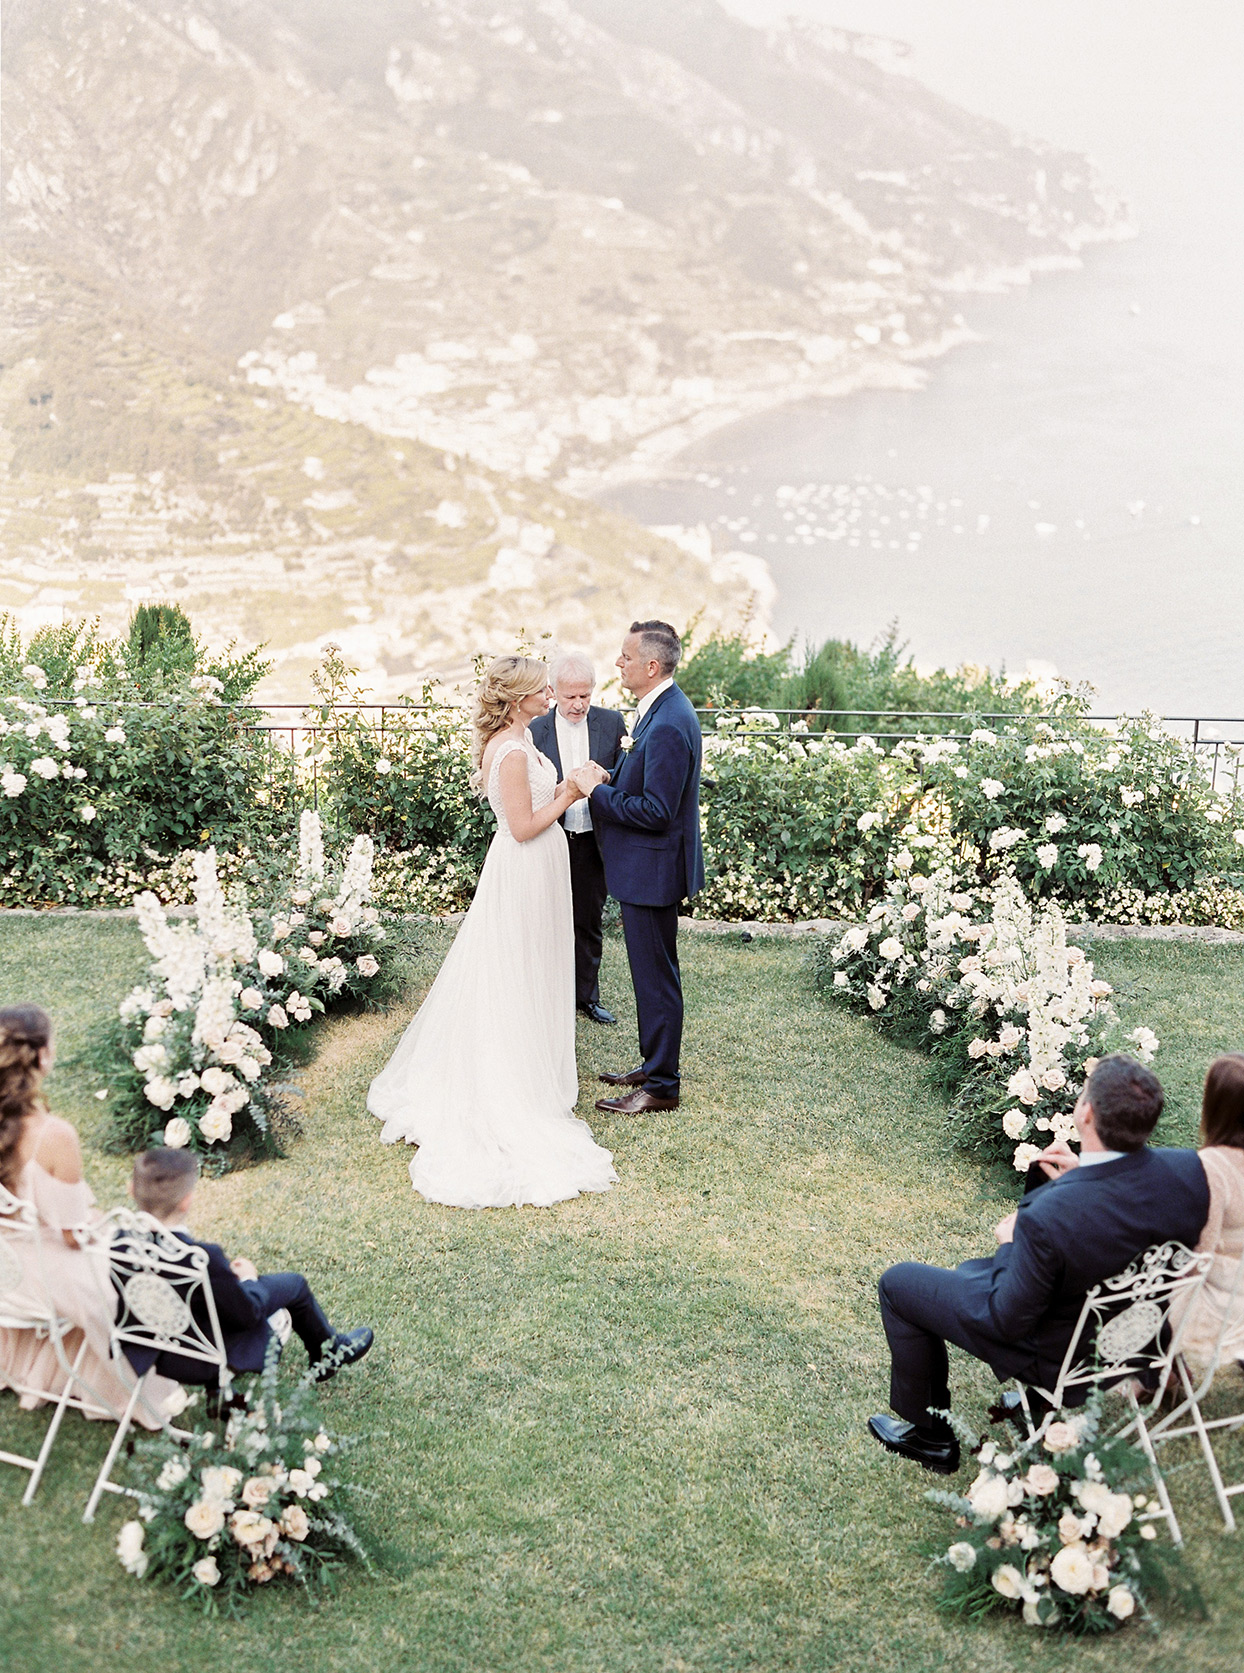 krystyna alexander small wedding ceremony amalfi coast